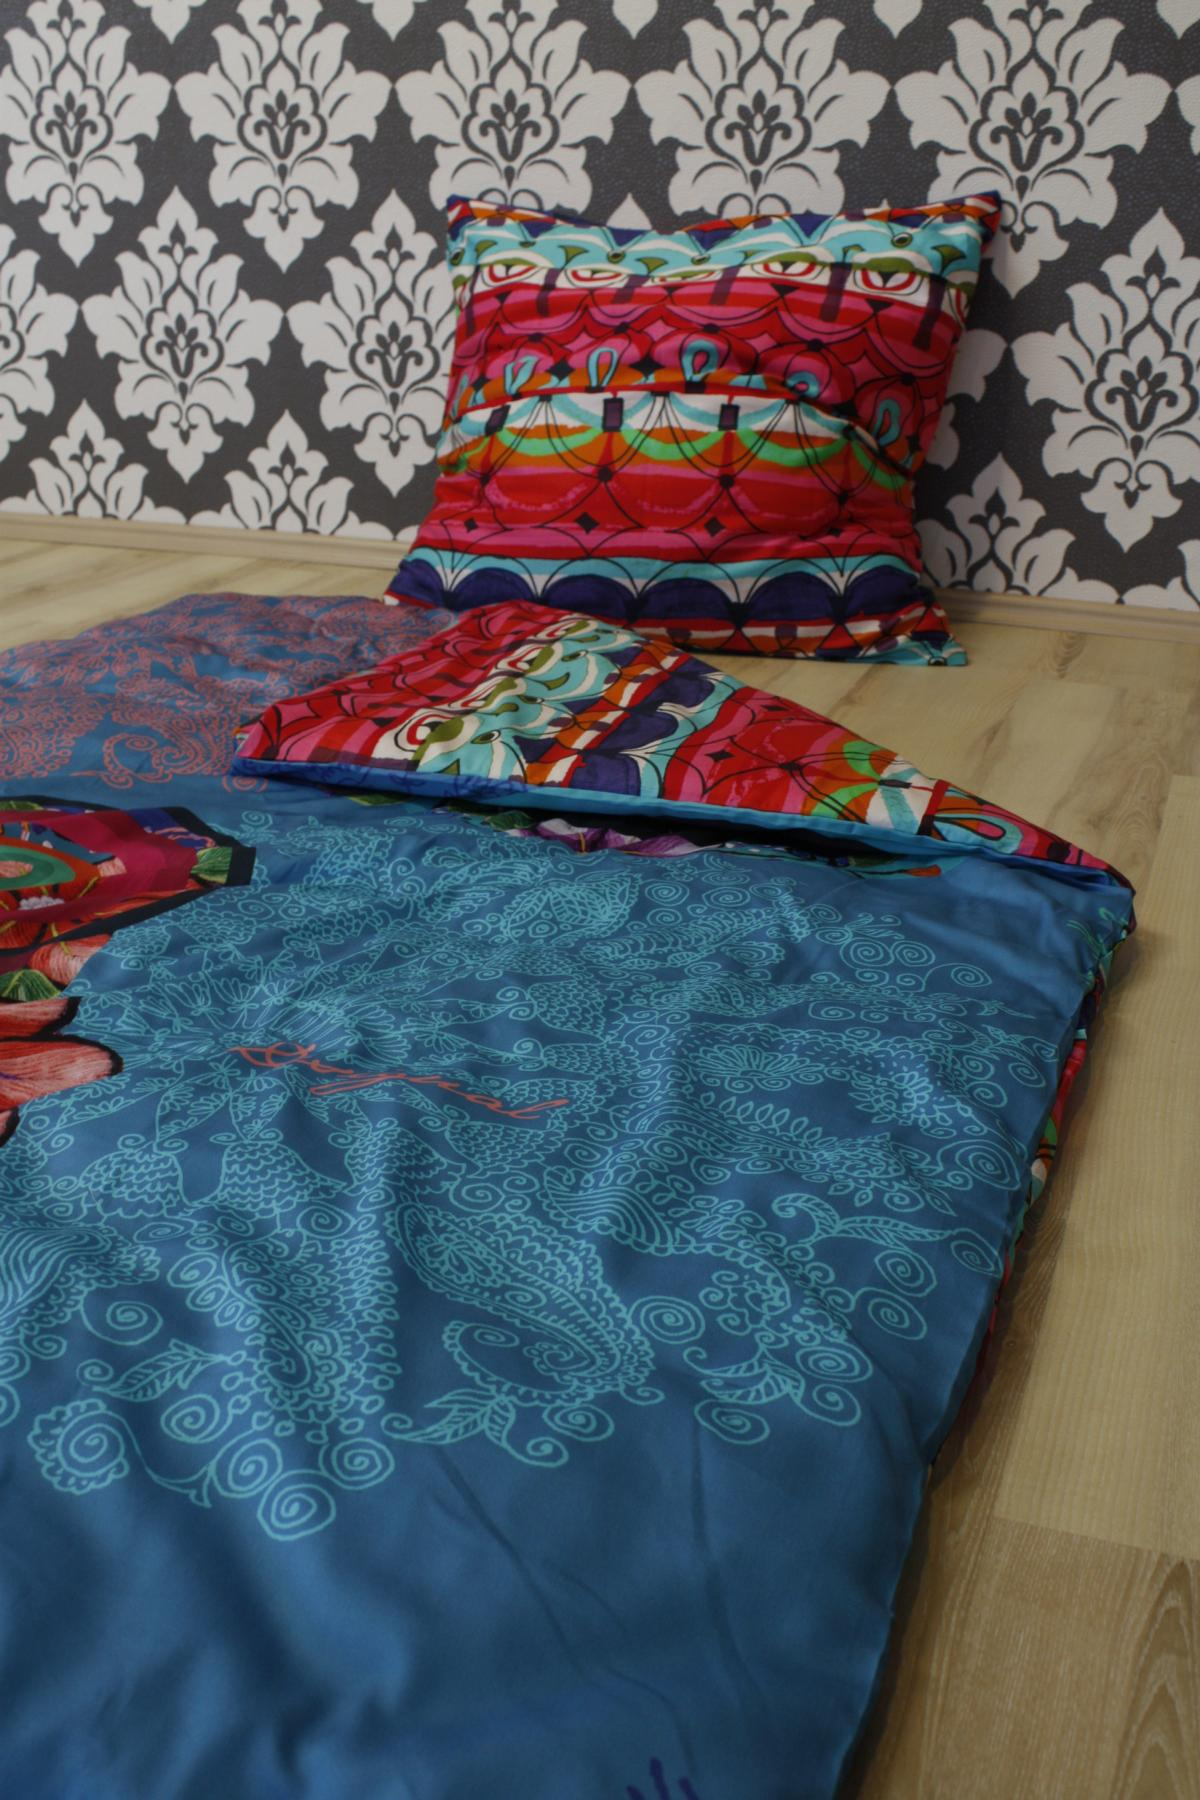 desigual bettw sche hand flower 2 teilig 155x220cm 80x80cm kissen ebay. Black Bedroom Furniture Sets. Home Design Ideas